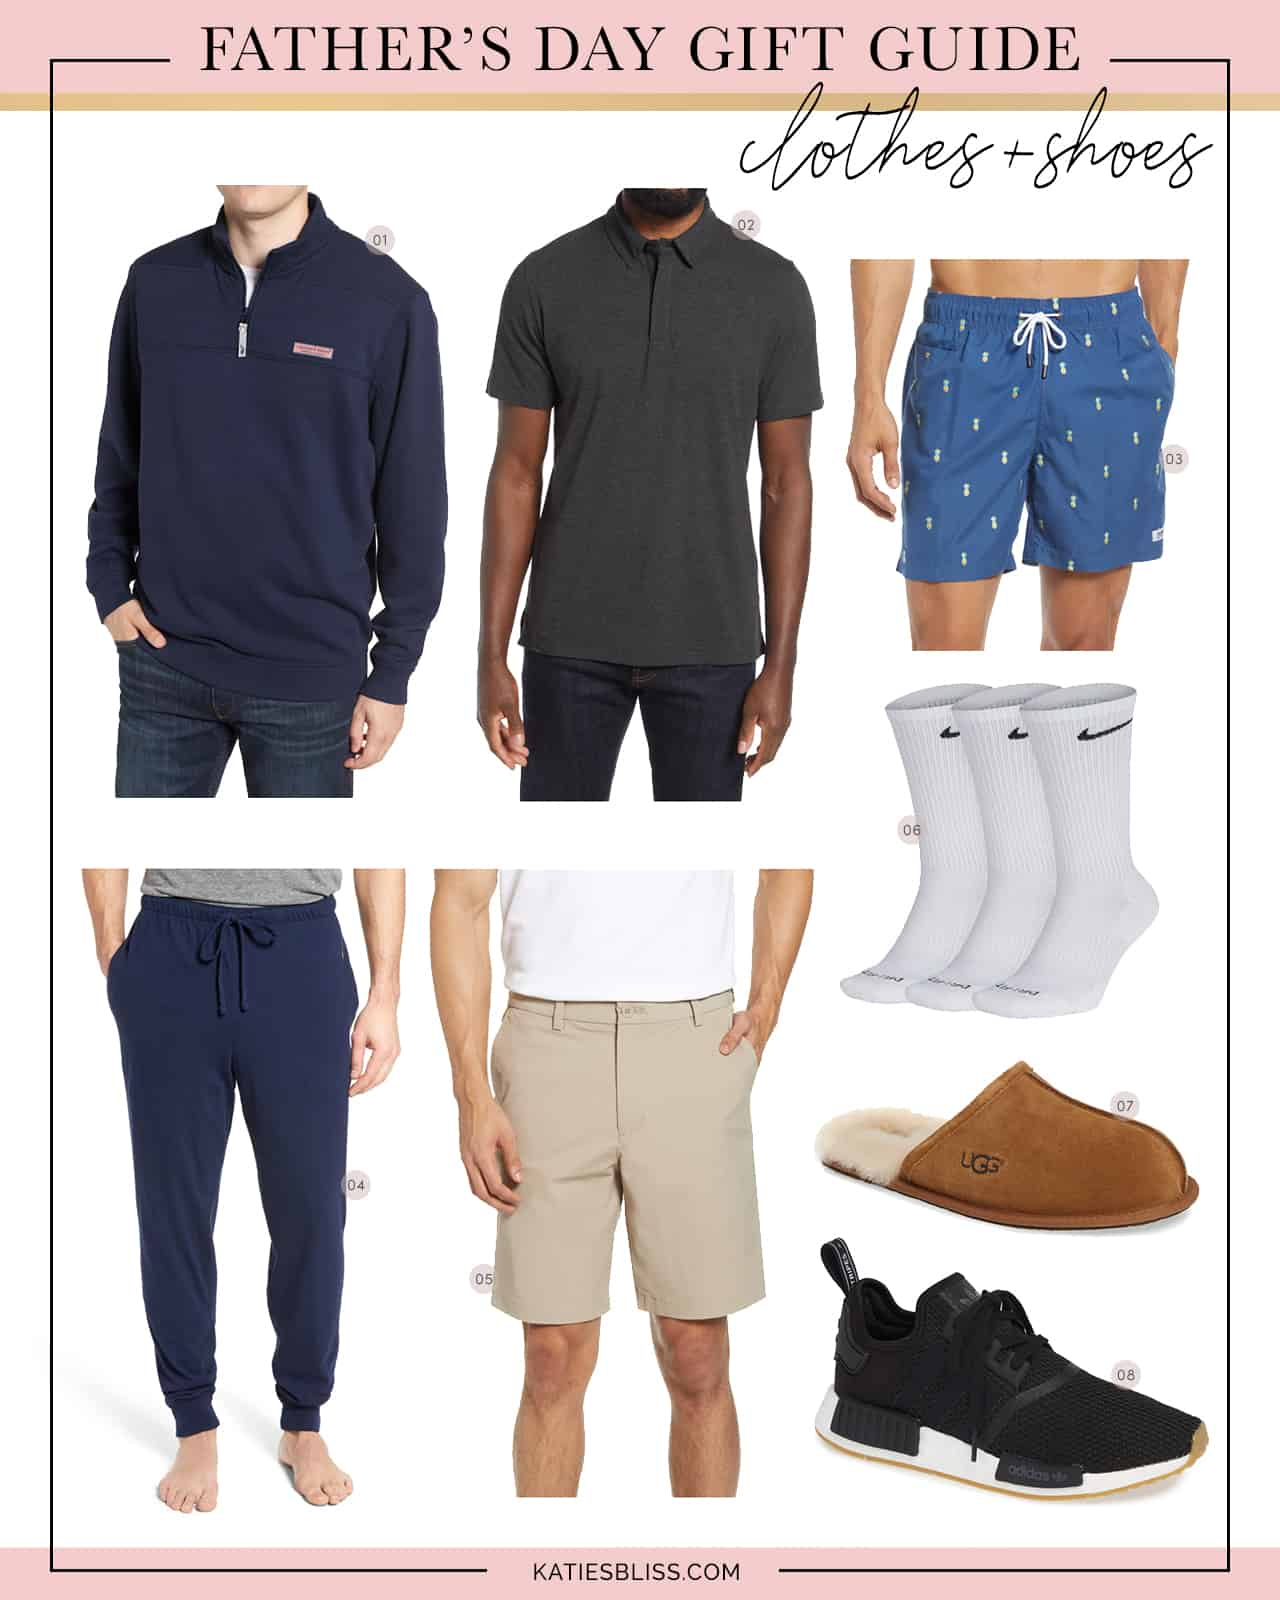 Katies Bliss Fathers Day Gift Guide